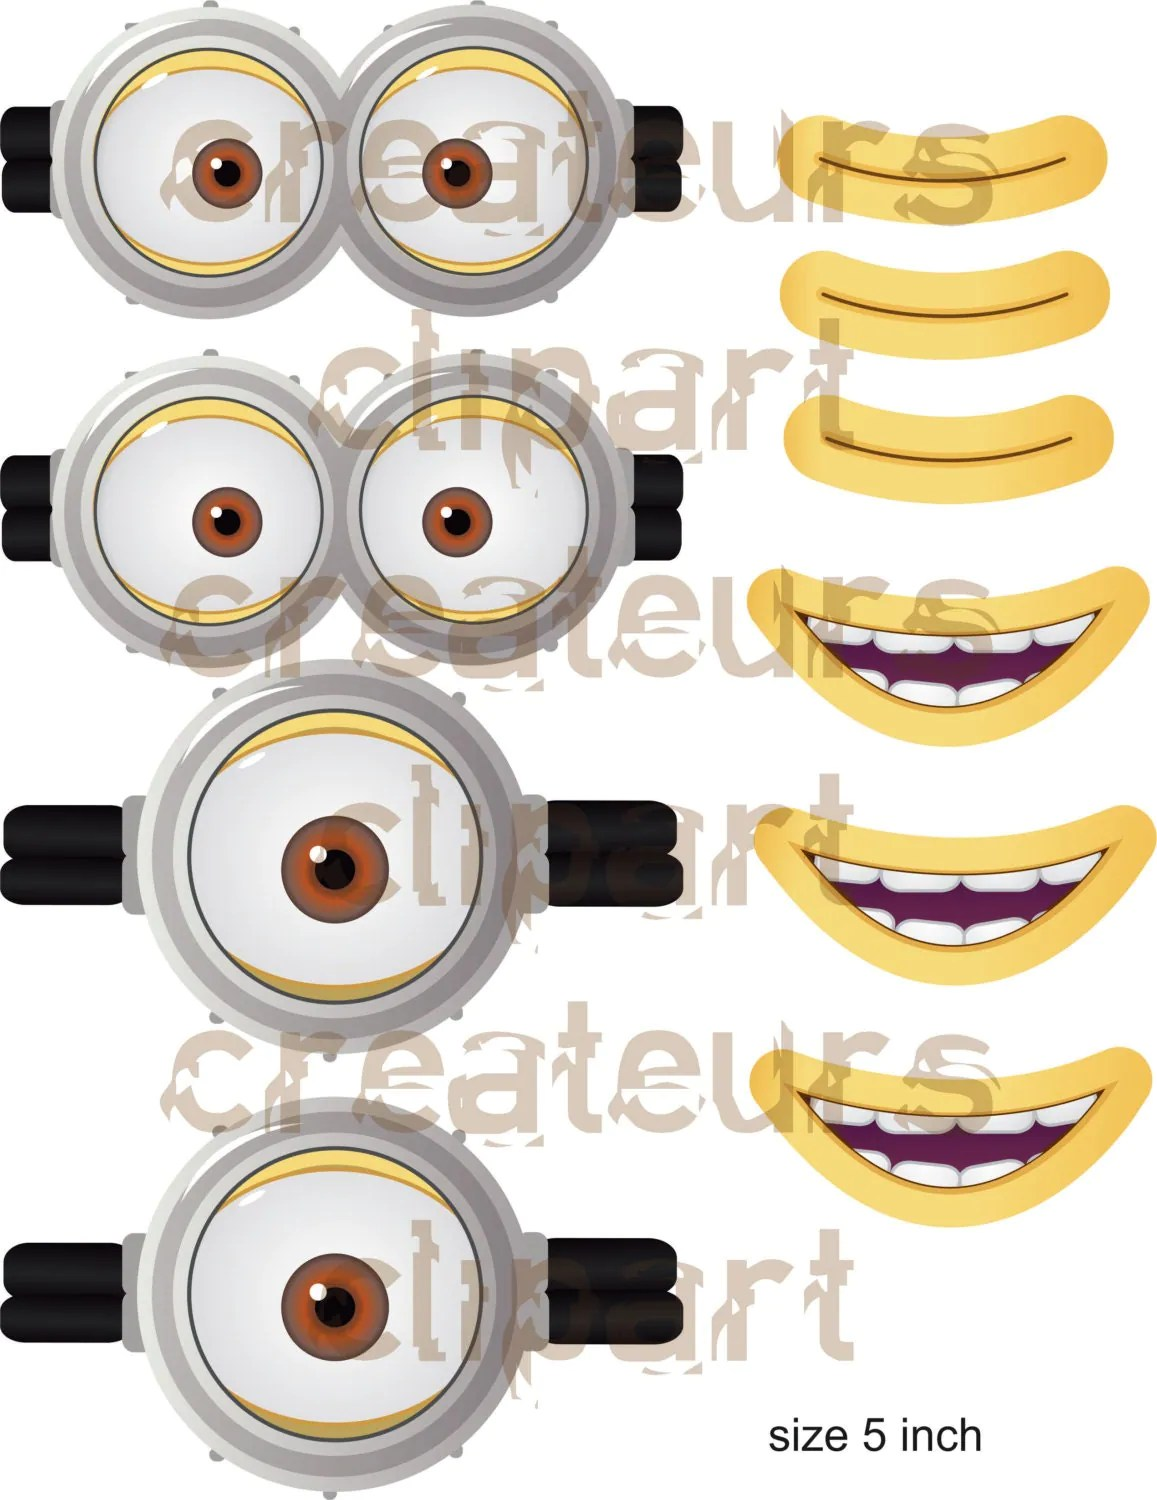 image about Minion Goggle Printable identify Minion Goggles Template. gles template lower out do-it-yourself minion